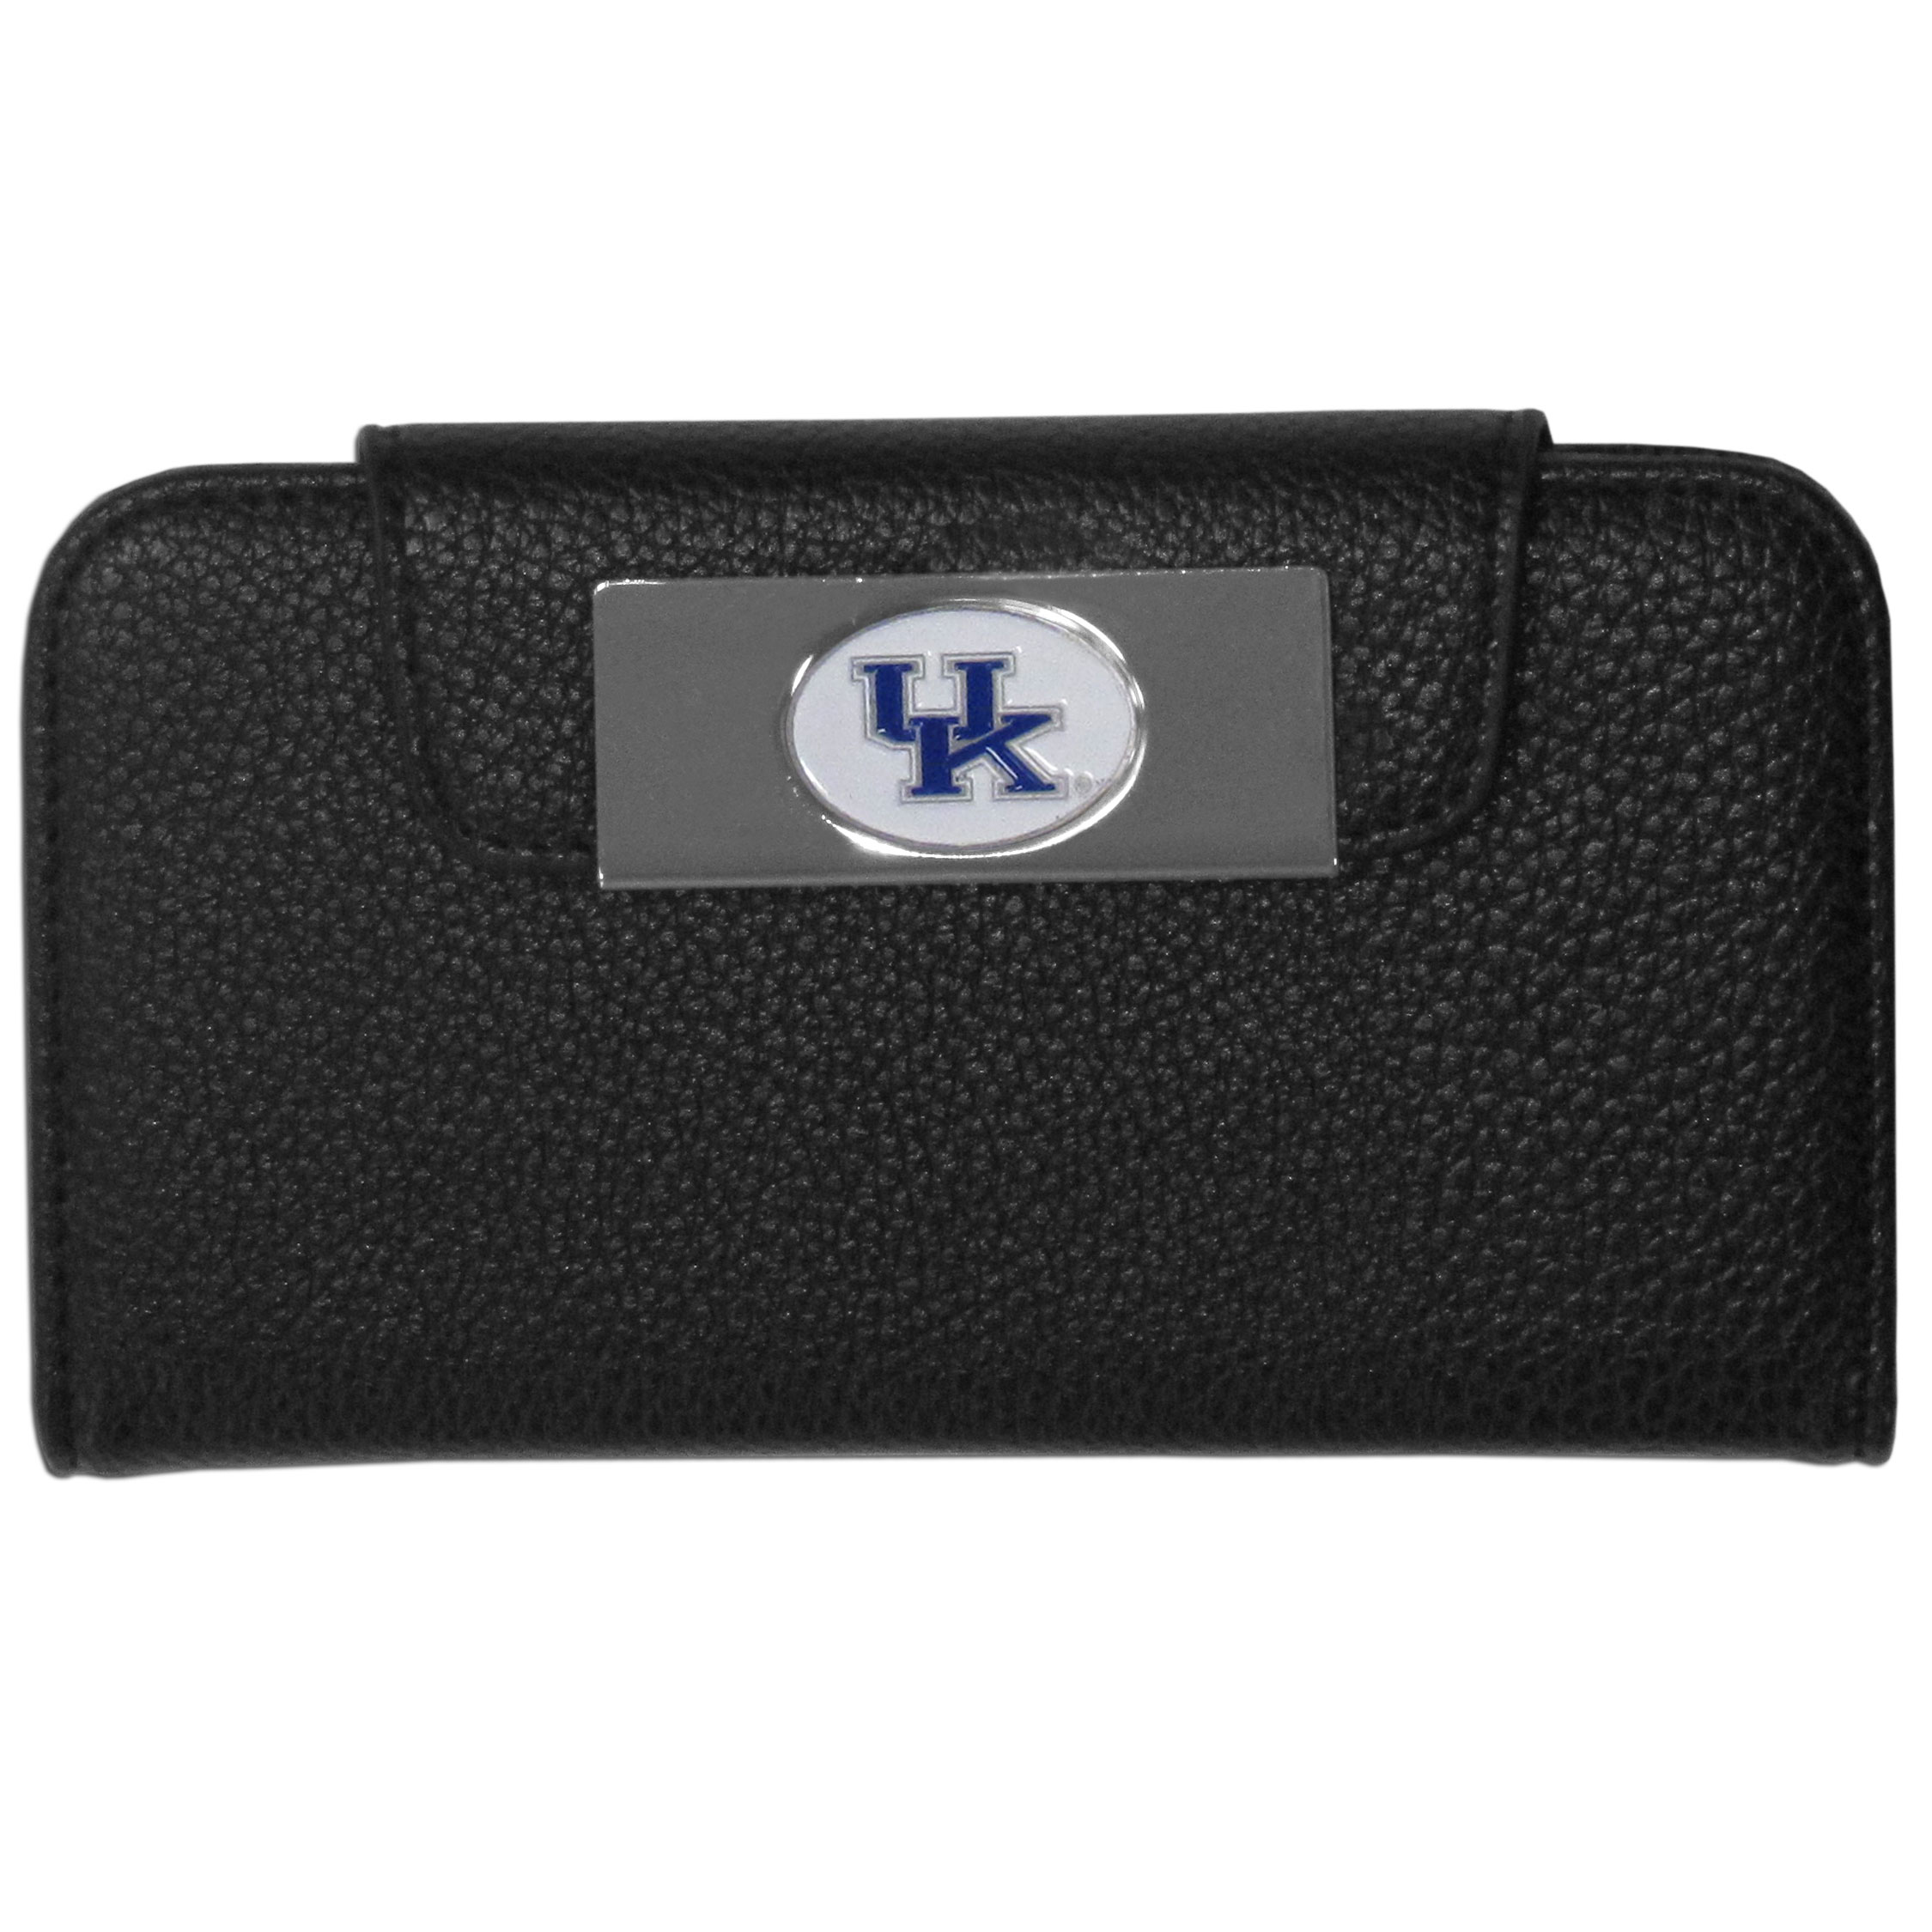 Kentucky Wildcats Samsung Galaxy S4 Wallet Case - This new & wildly popular case is ideal for those who like to travel light! The stylish case has an inner hard shell that securely holds your phone while allowing complete access to the phone's functionality. The flip cover has slots for credit cards, business cards and identification. The magnetic flip cover has a metal Kentucky Wildcats emblem on a high polish chrome backing. Fits the Samsung Galaxy S4